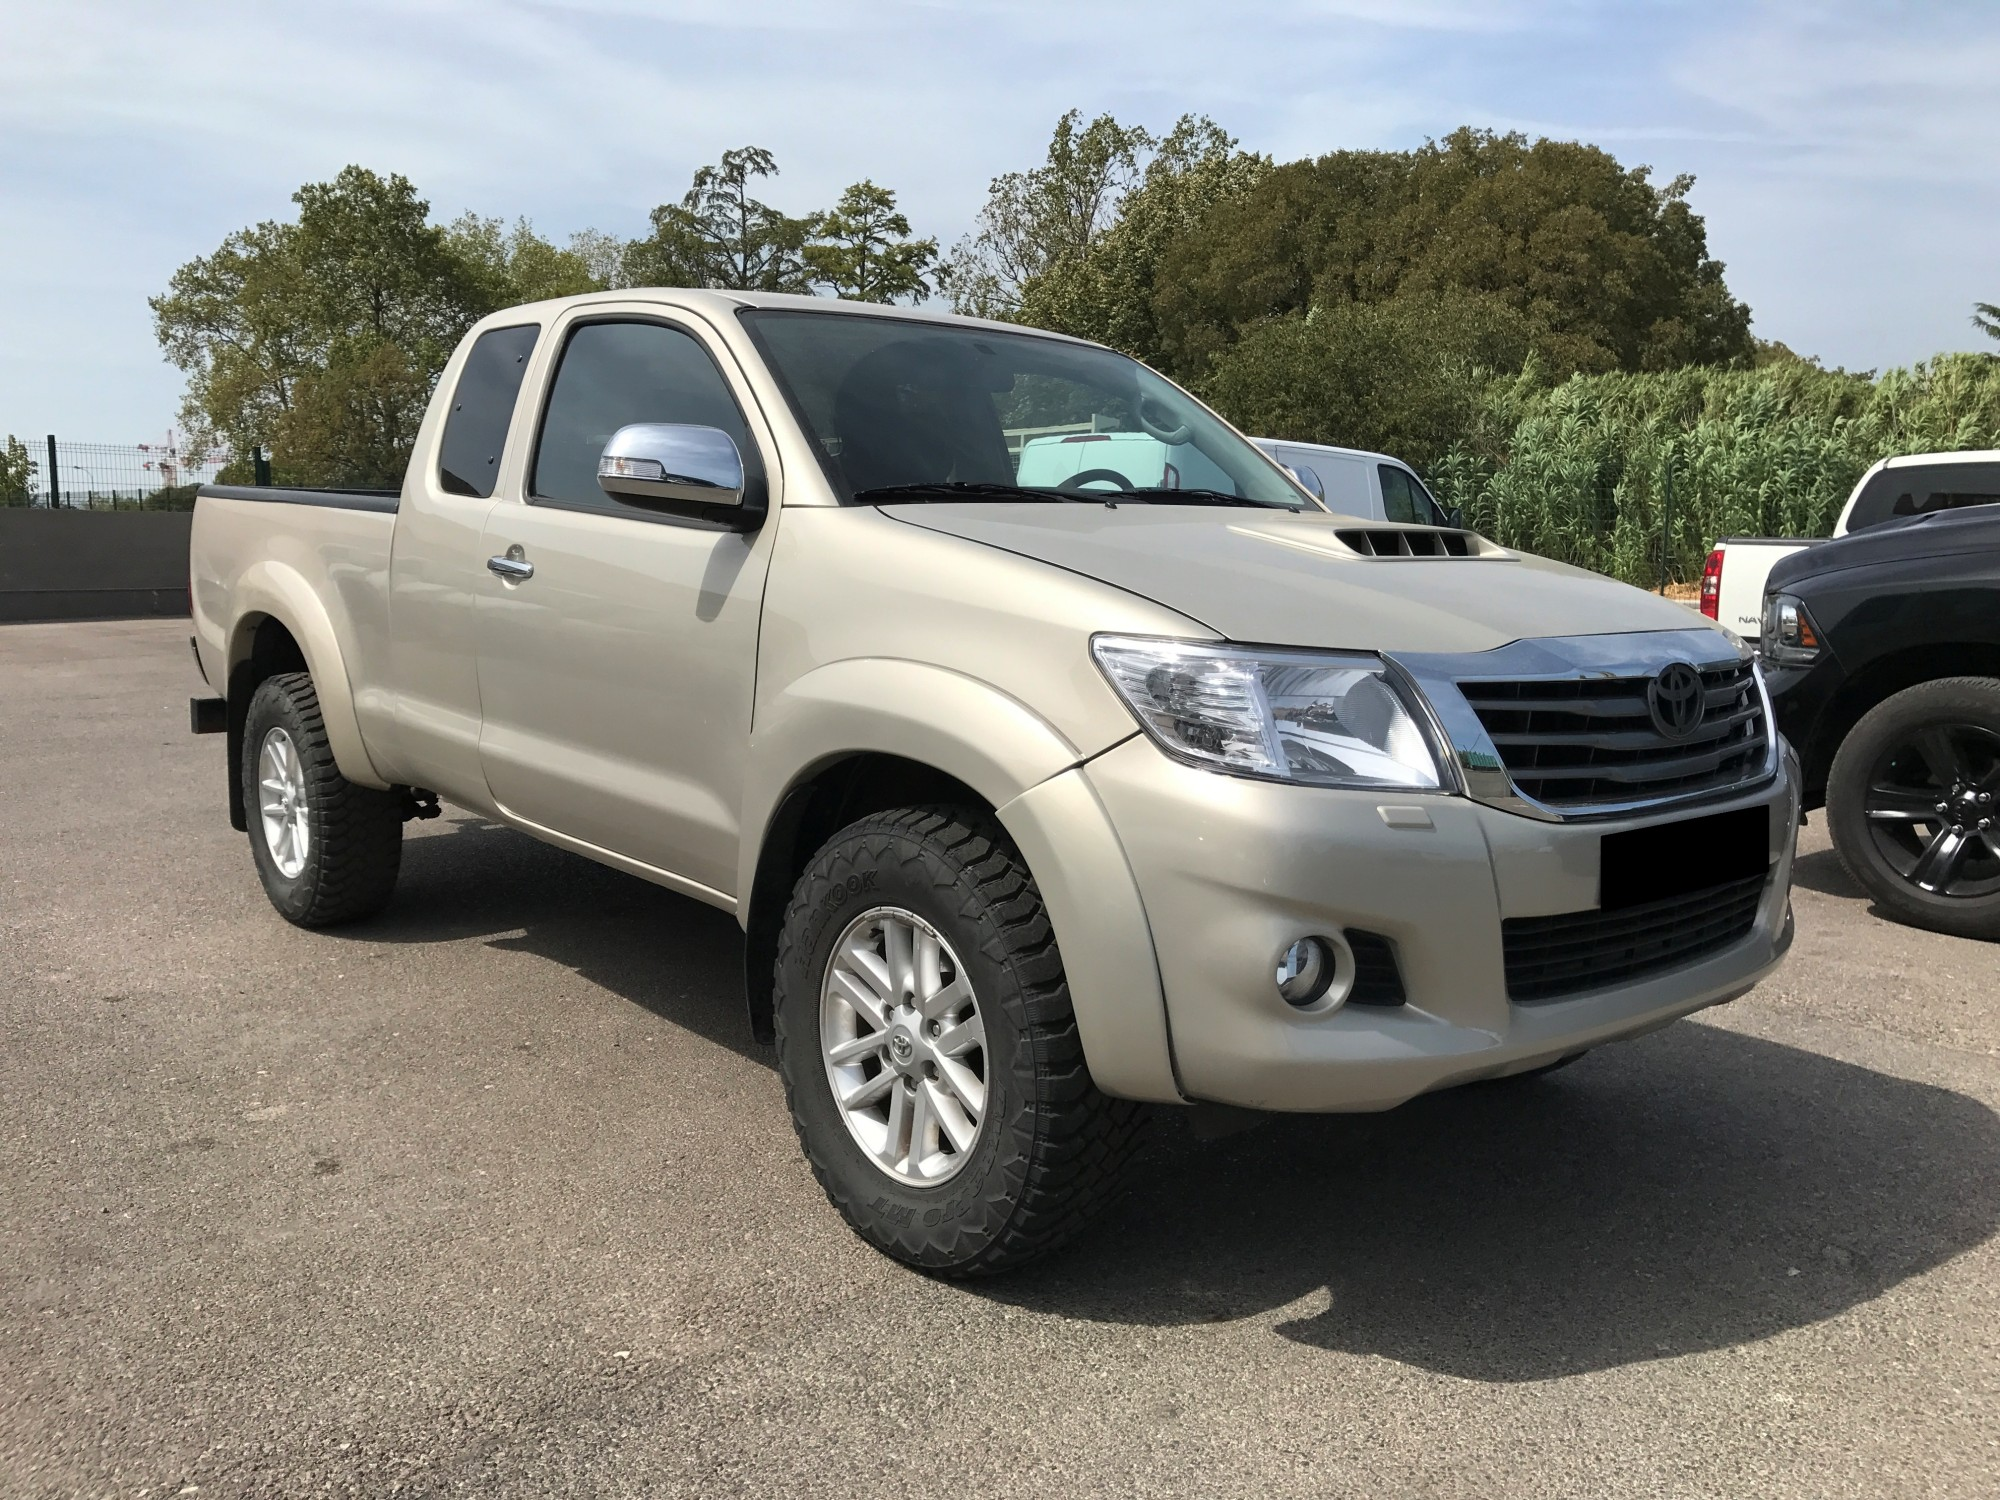 toyota pick up occasion belgique 9 800 000fcfa toyota pickup hilux 4x4wd version 2012 occasion. Black Bedroom Furniture Sets. Home Design Ideas